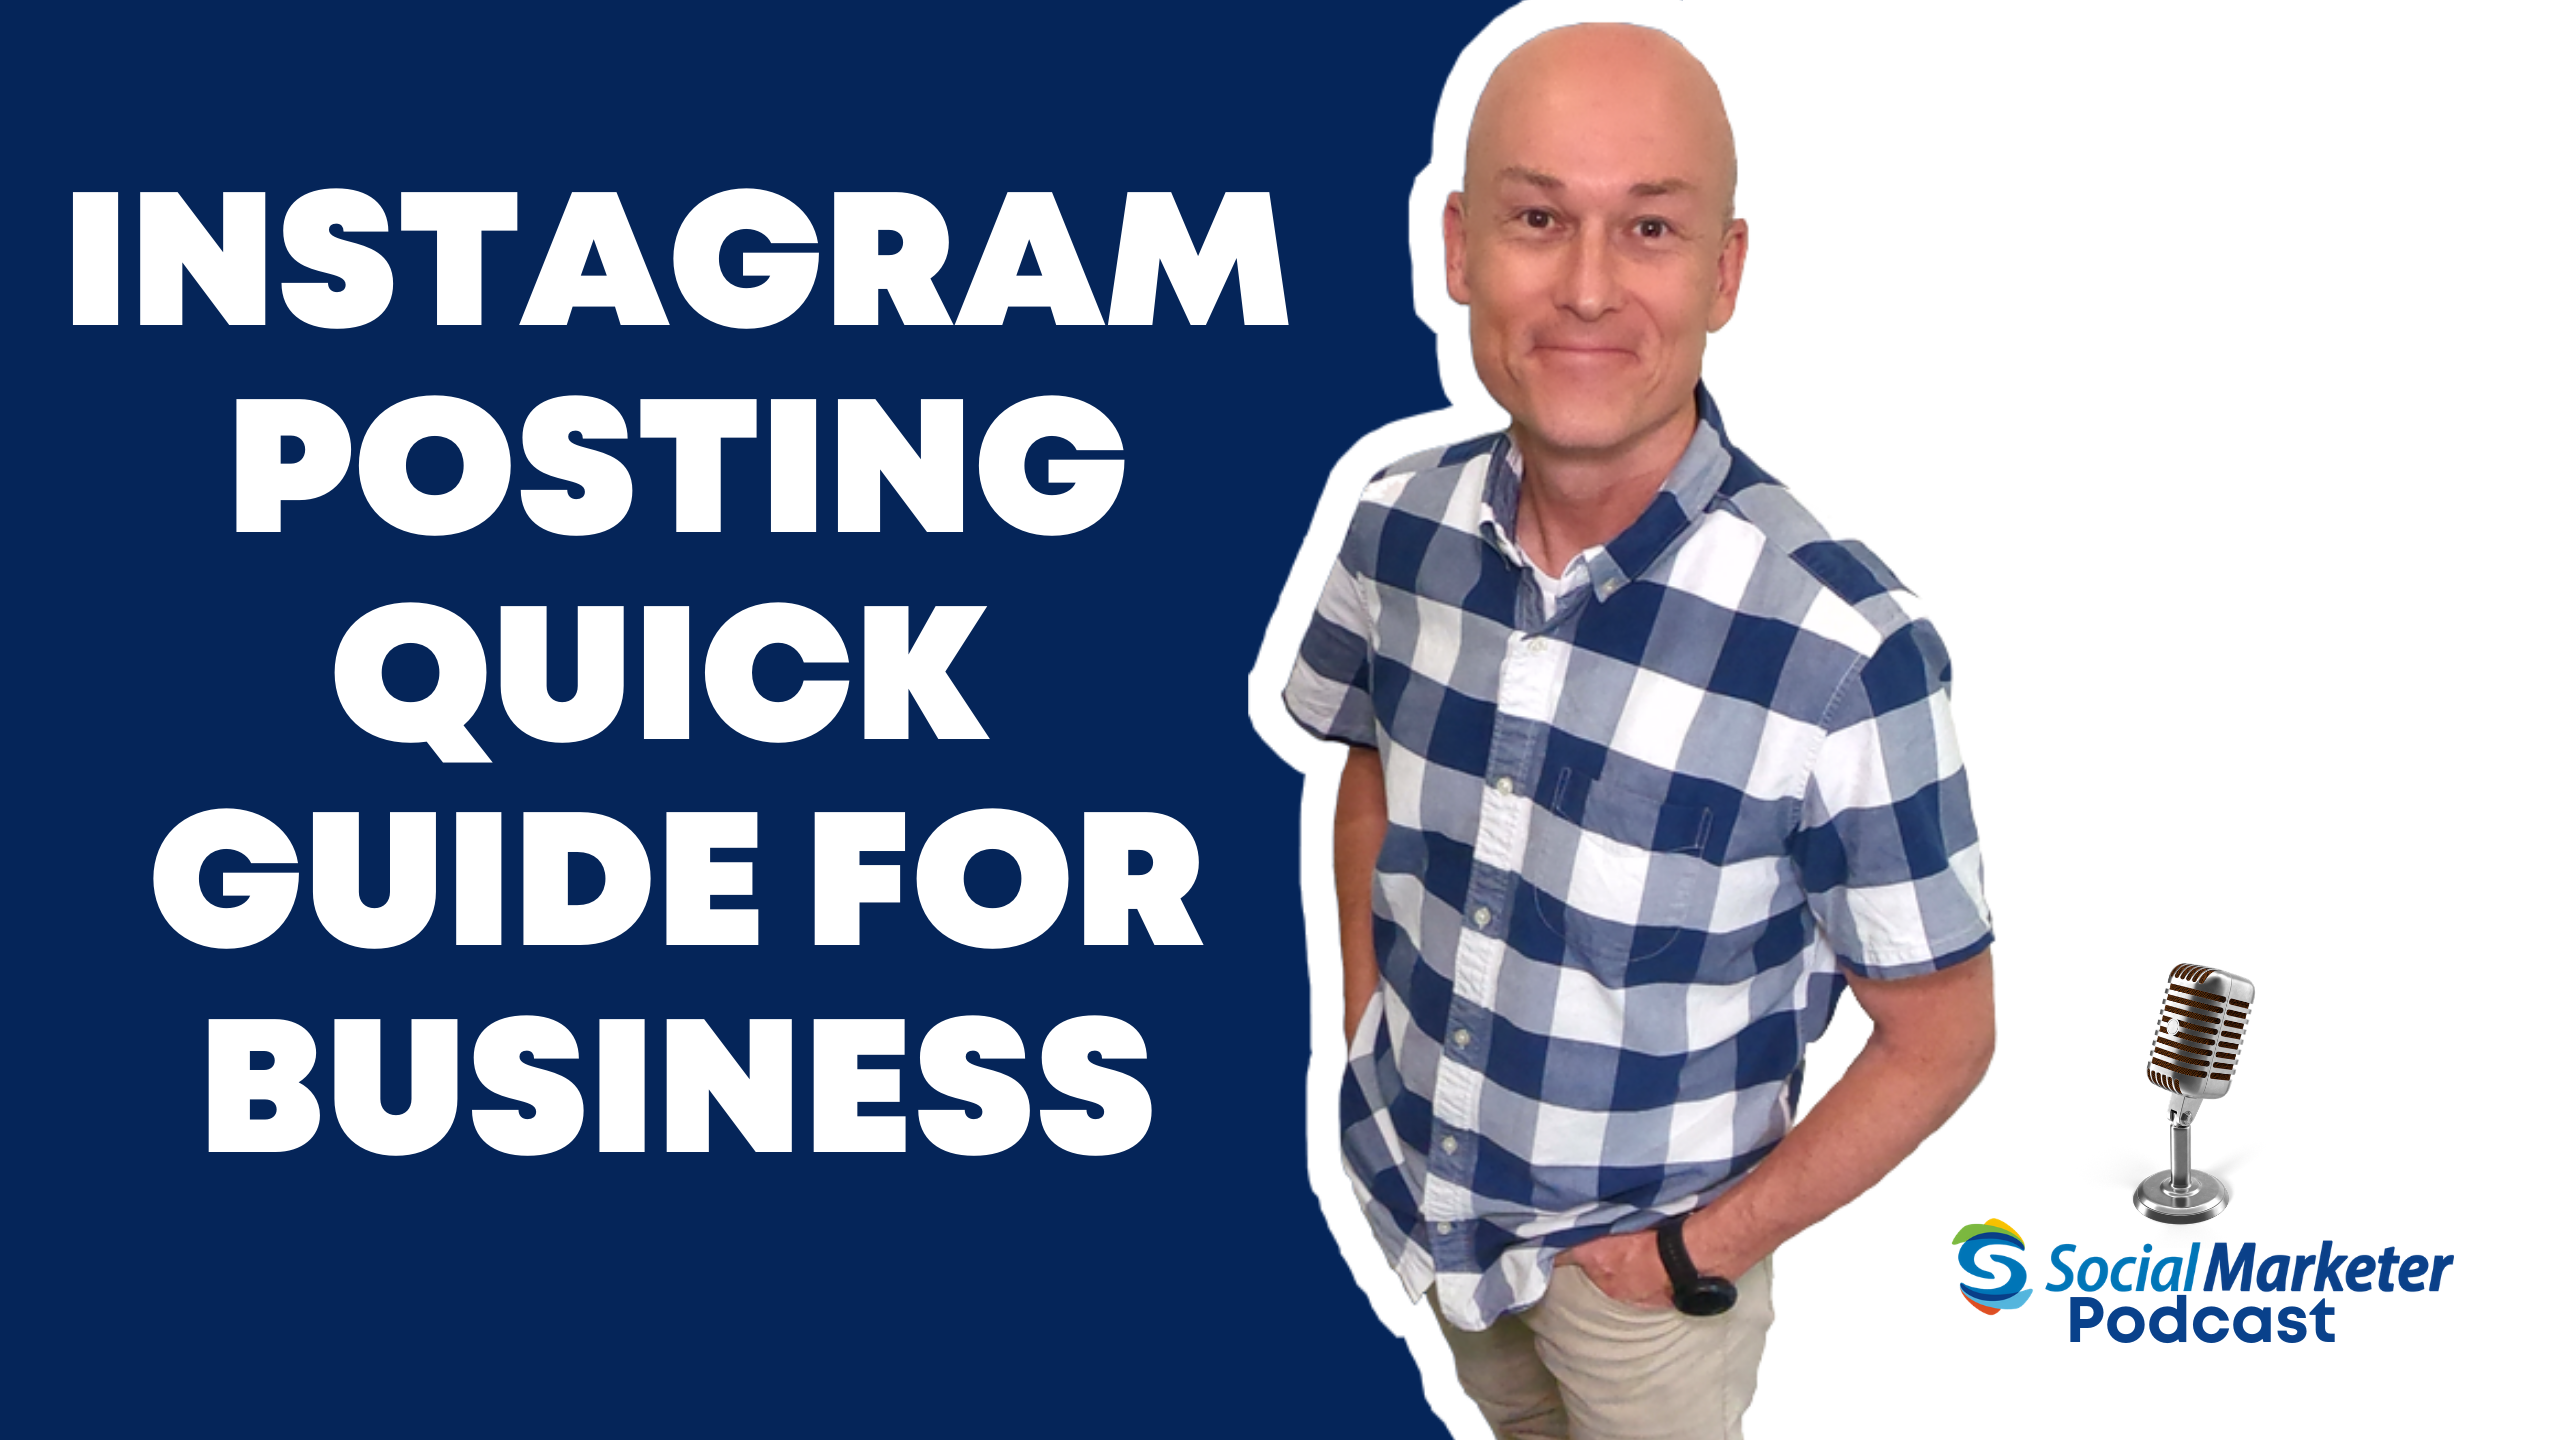 Instagram Posting Quick Guide For Business - Social Marketer Podcast with Brent Purves